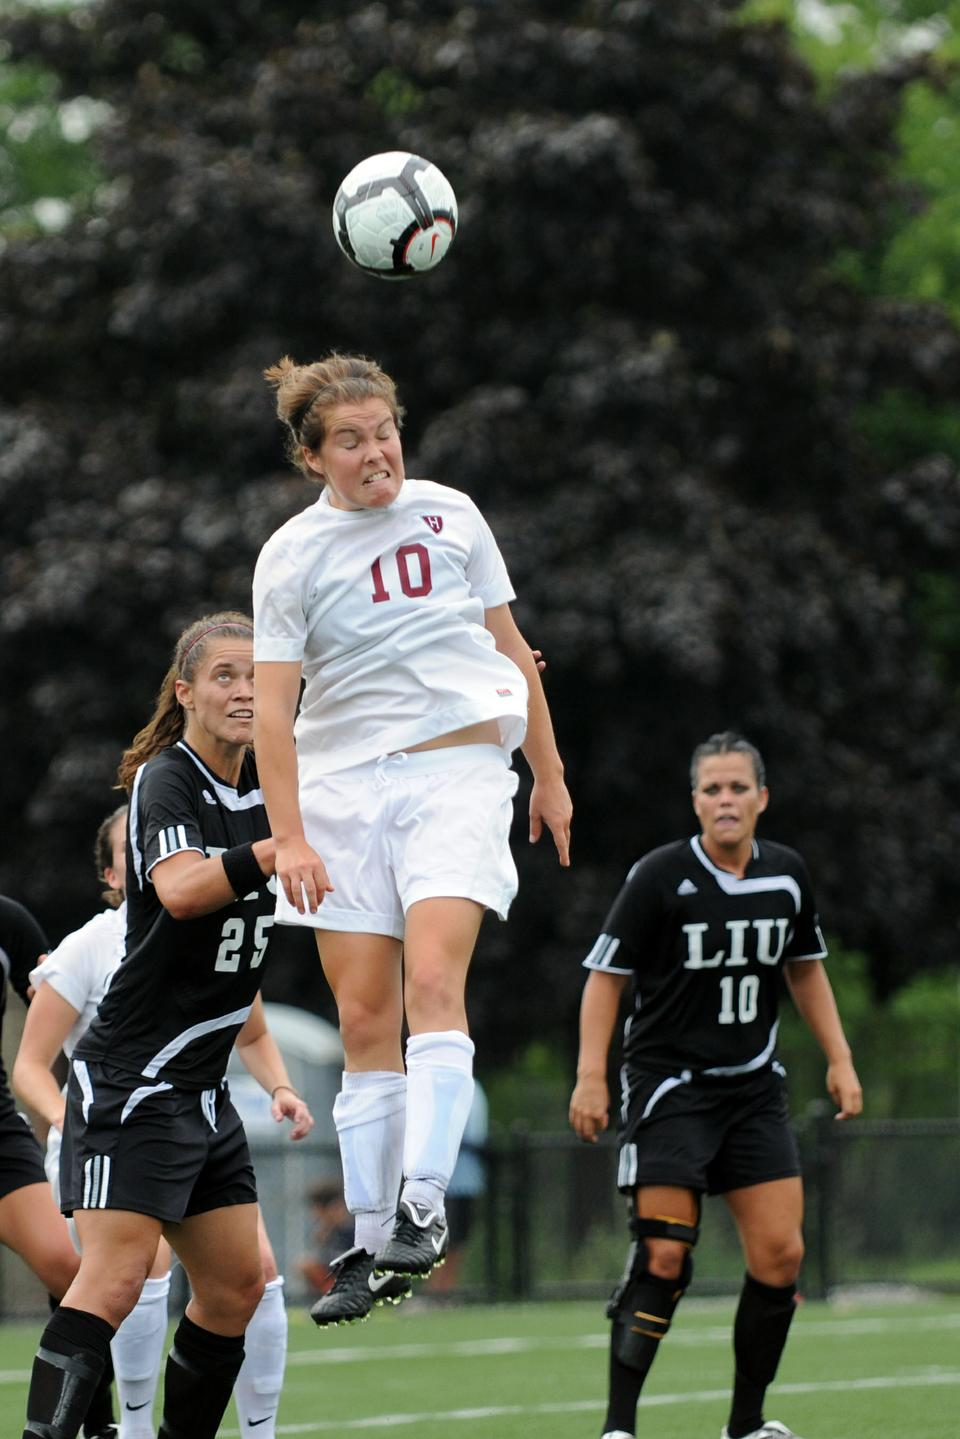 Women's soccer co-captain Melanie Baskind leads Harvard into home games against local opponents UMass and UConn this weekend. The Crimson is coming off a dramatic 2-1 victory over Elon last Sunday.